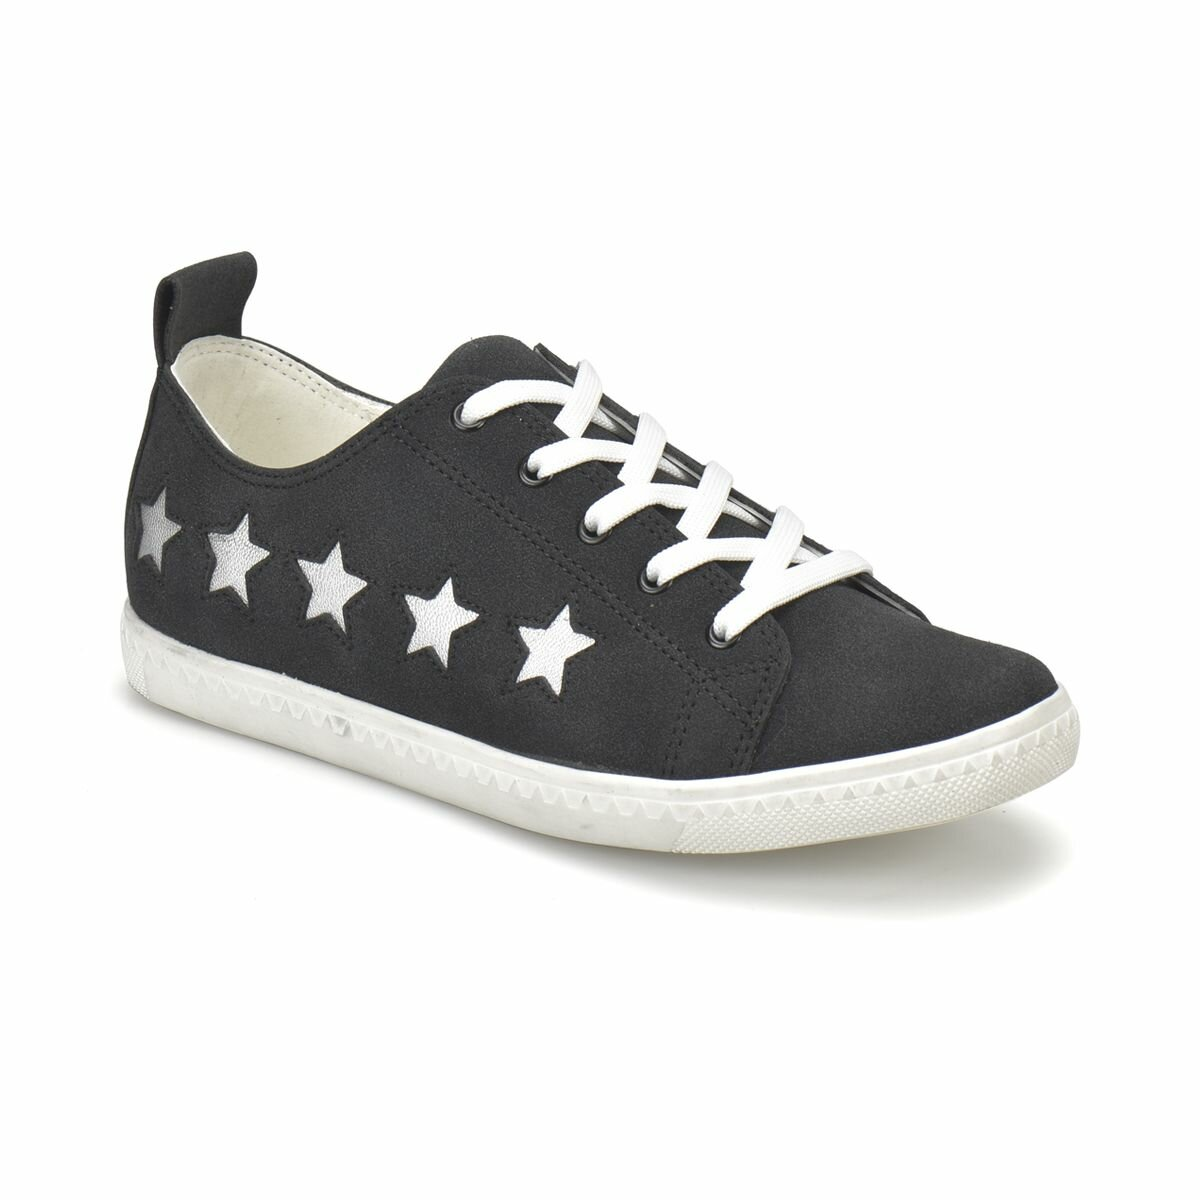 FLO CS18003 Black Women 'S Sneaker Shoes Art Bella